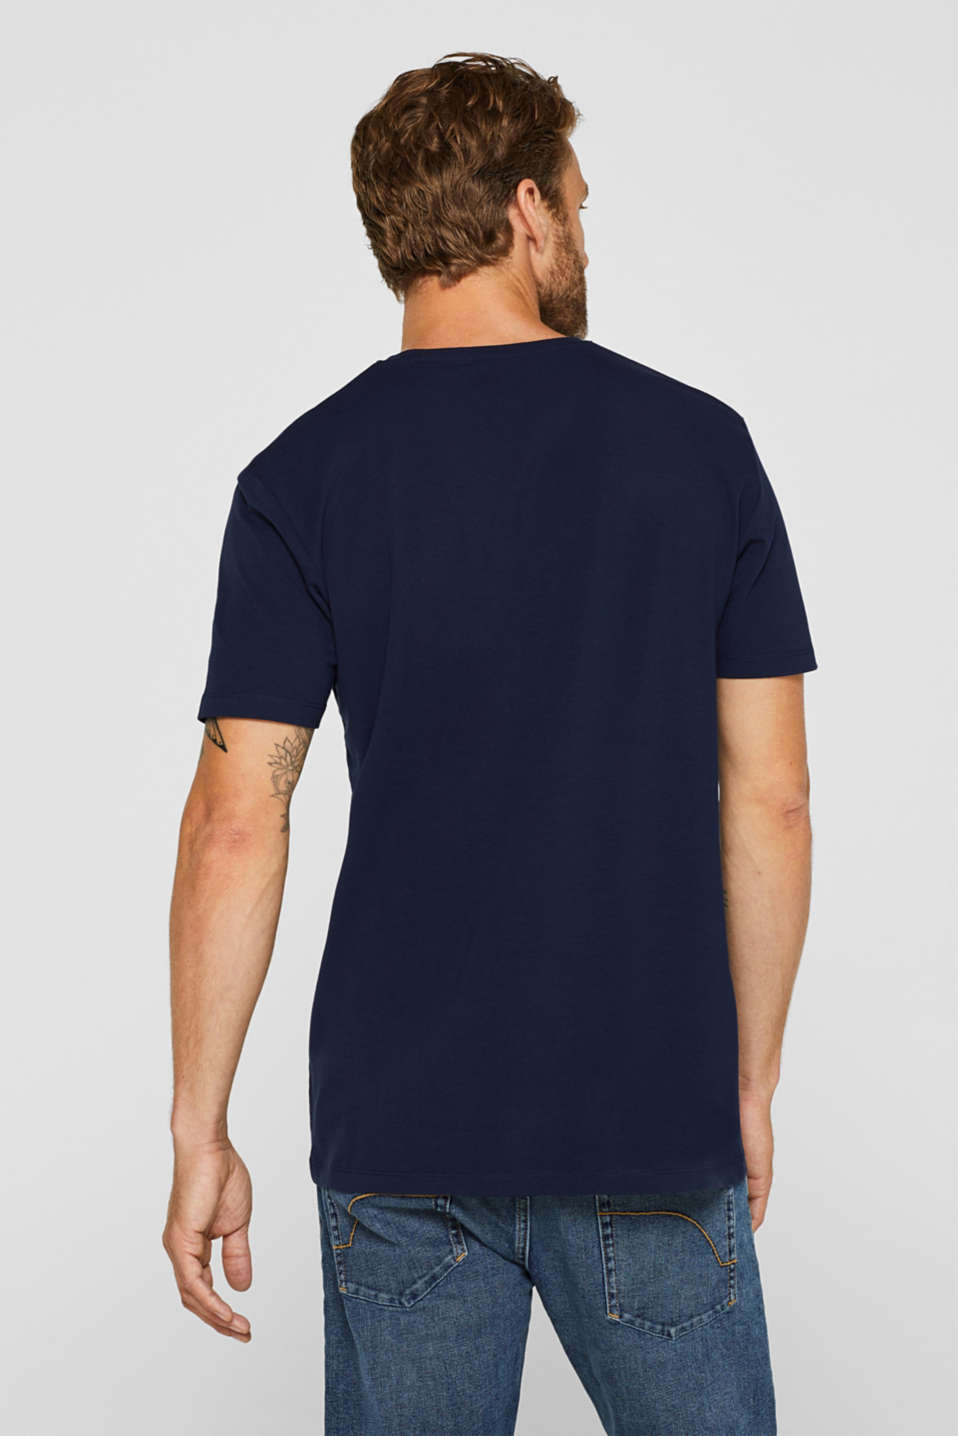 Jersey T-shirt in stretch cotton, NAVY, detail image number 3